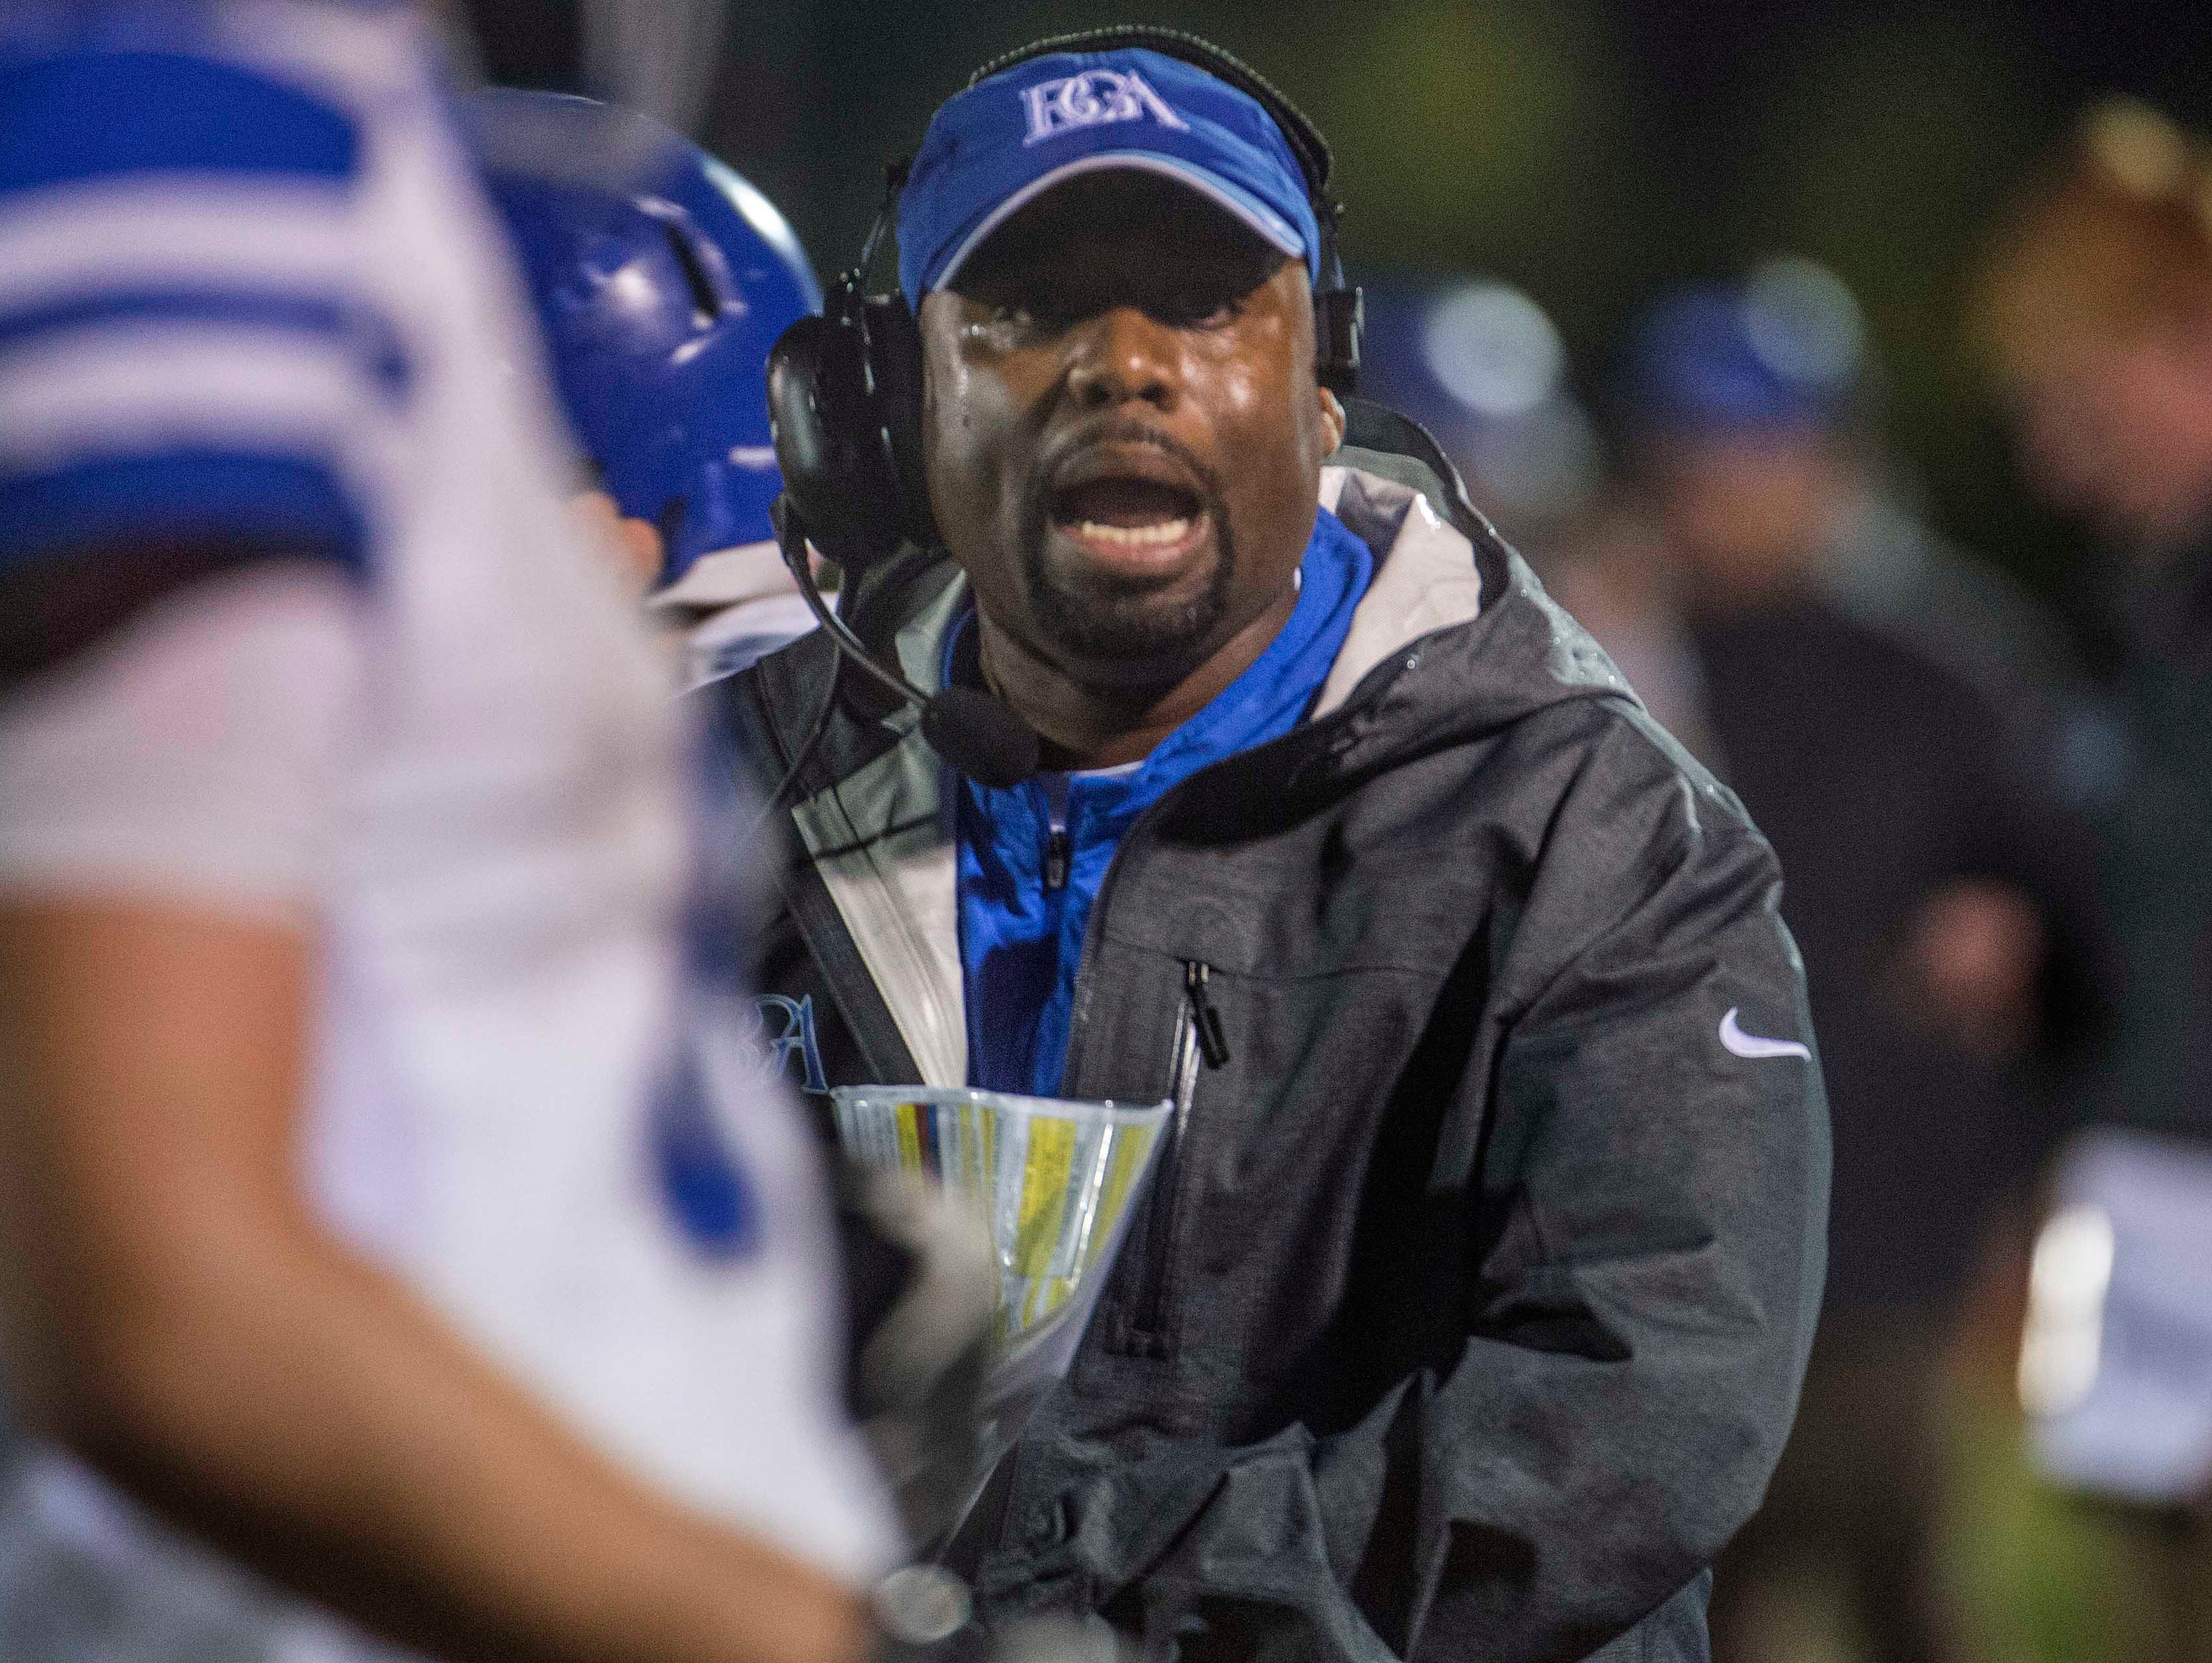 BGA coach Roc Batten encourages his team in the final seconds of overtime at Page High School on Friday.